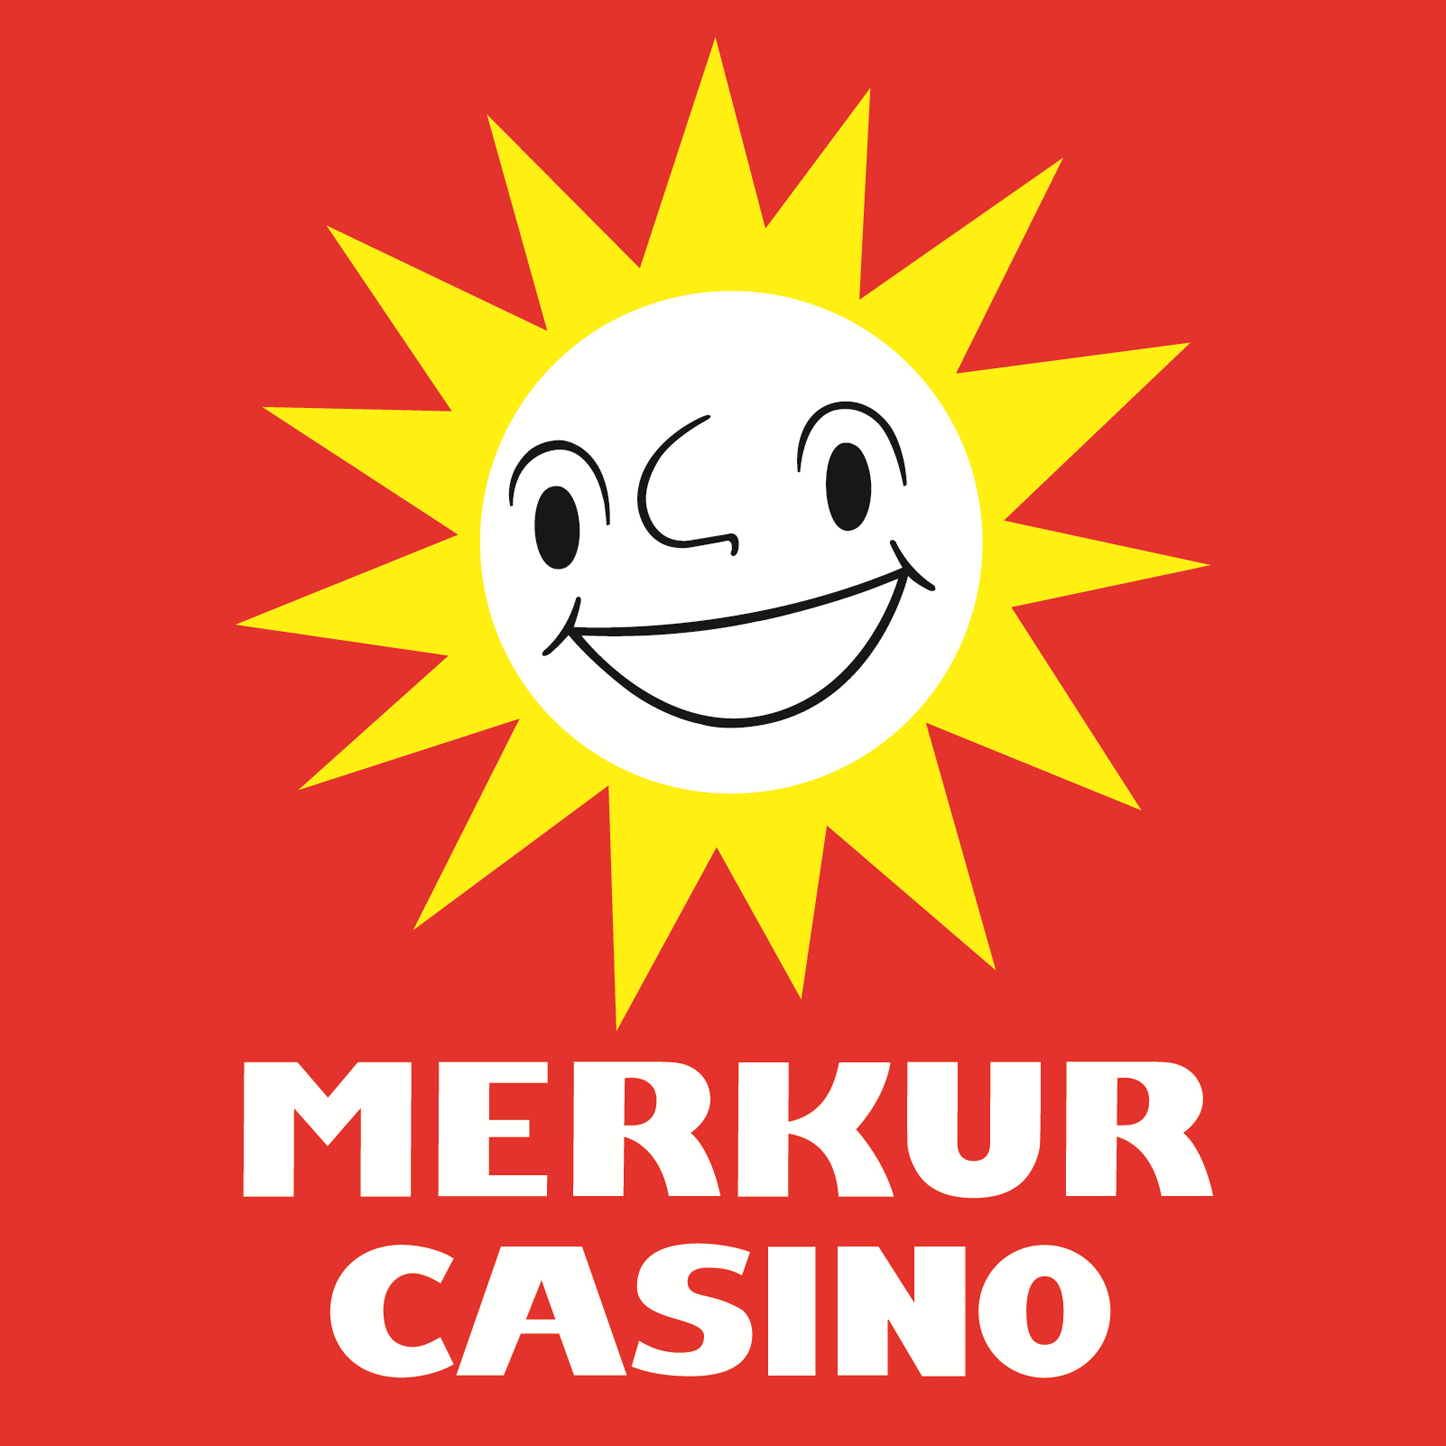 mercur casino